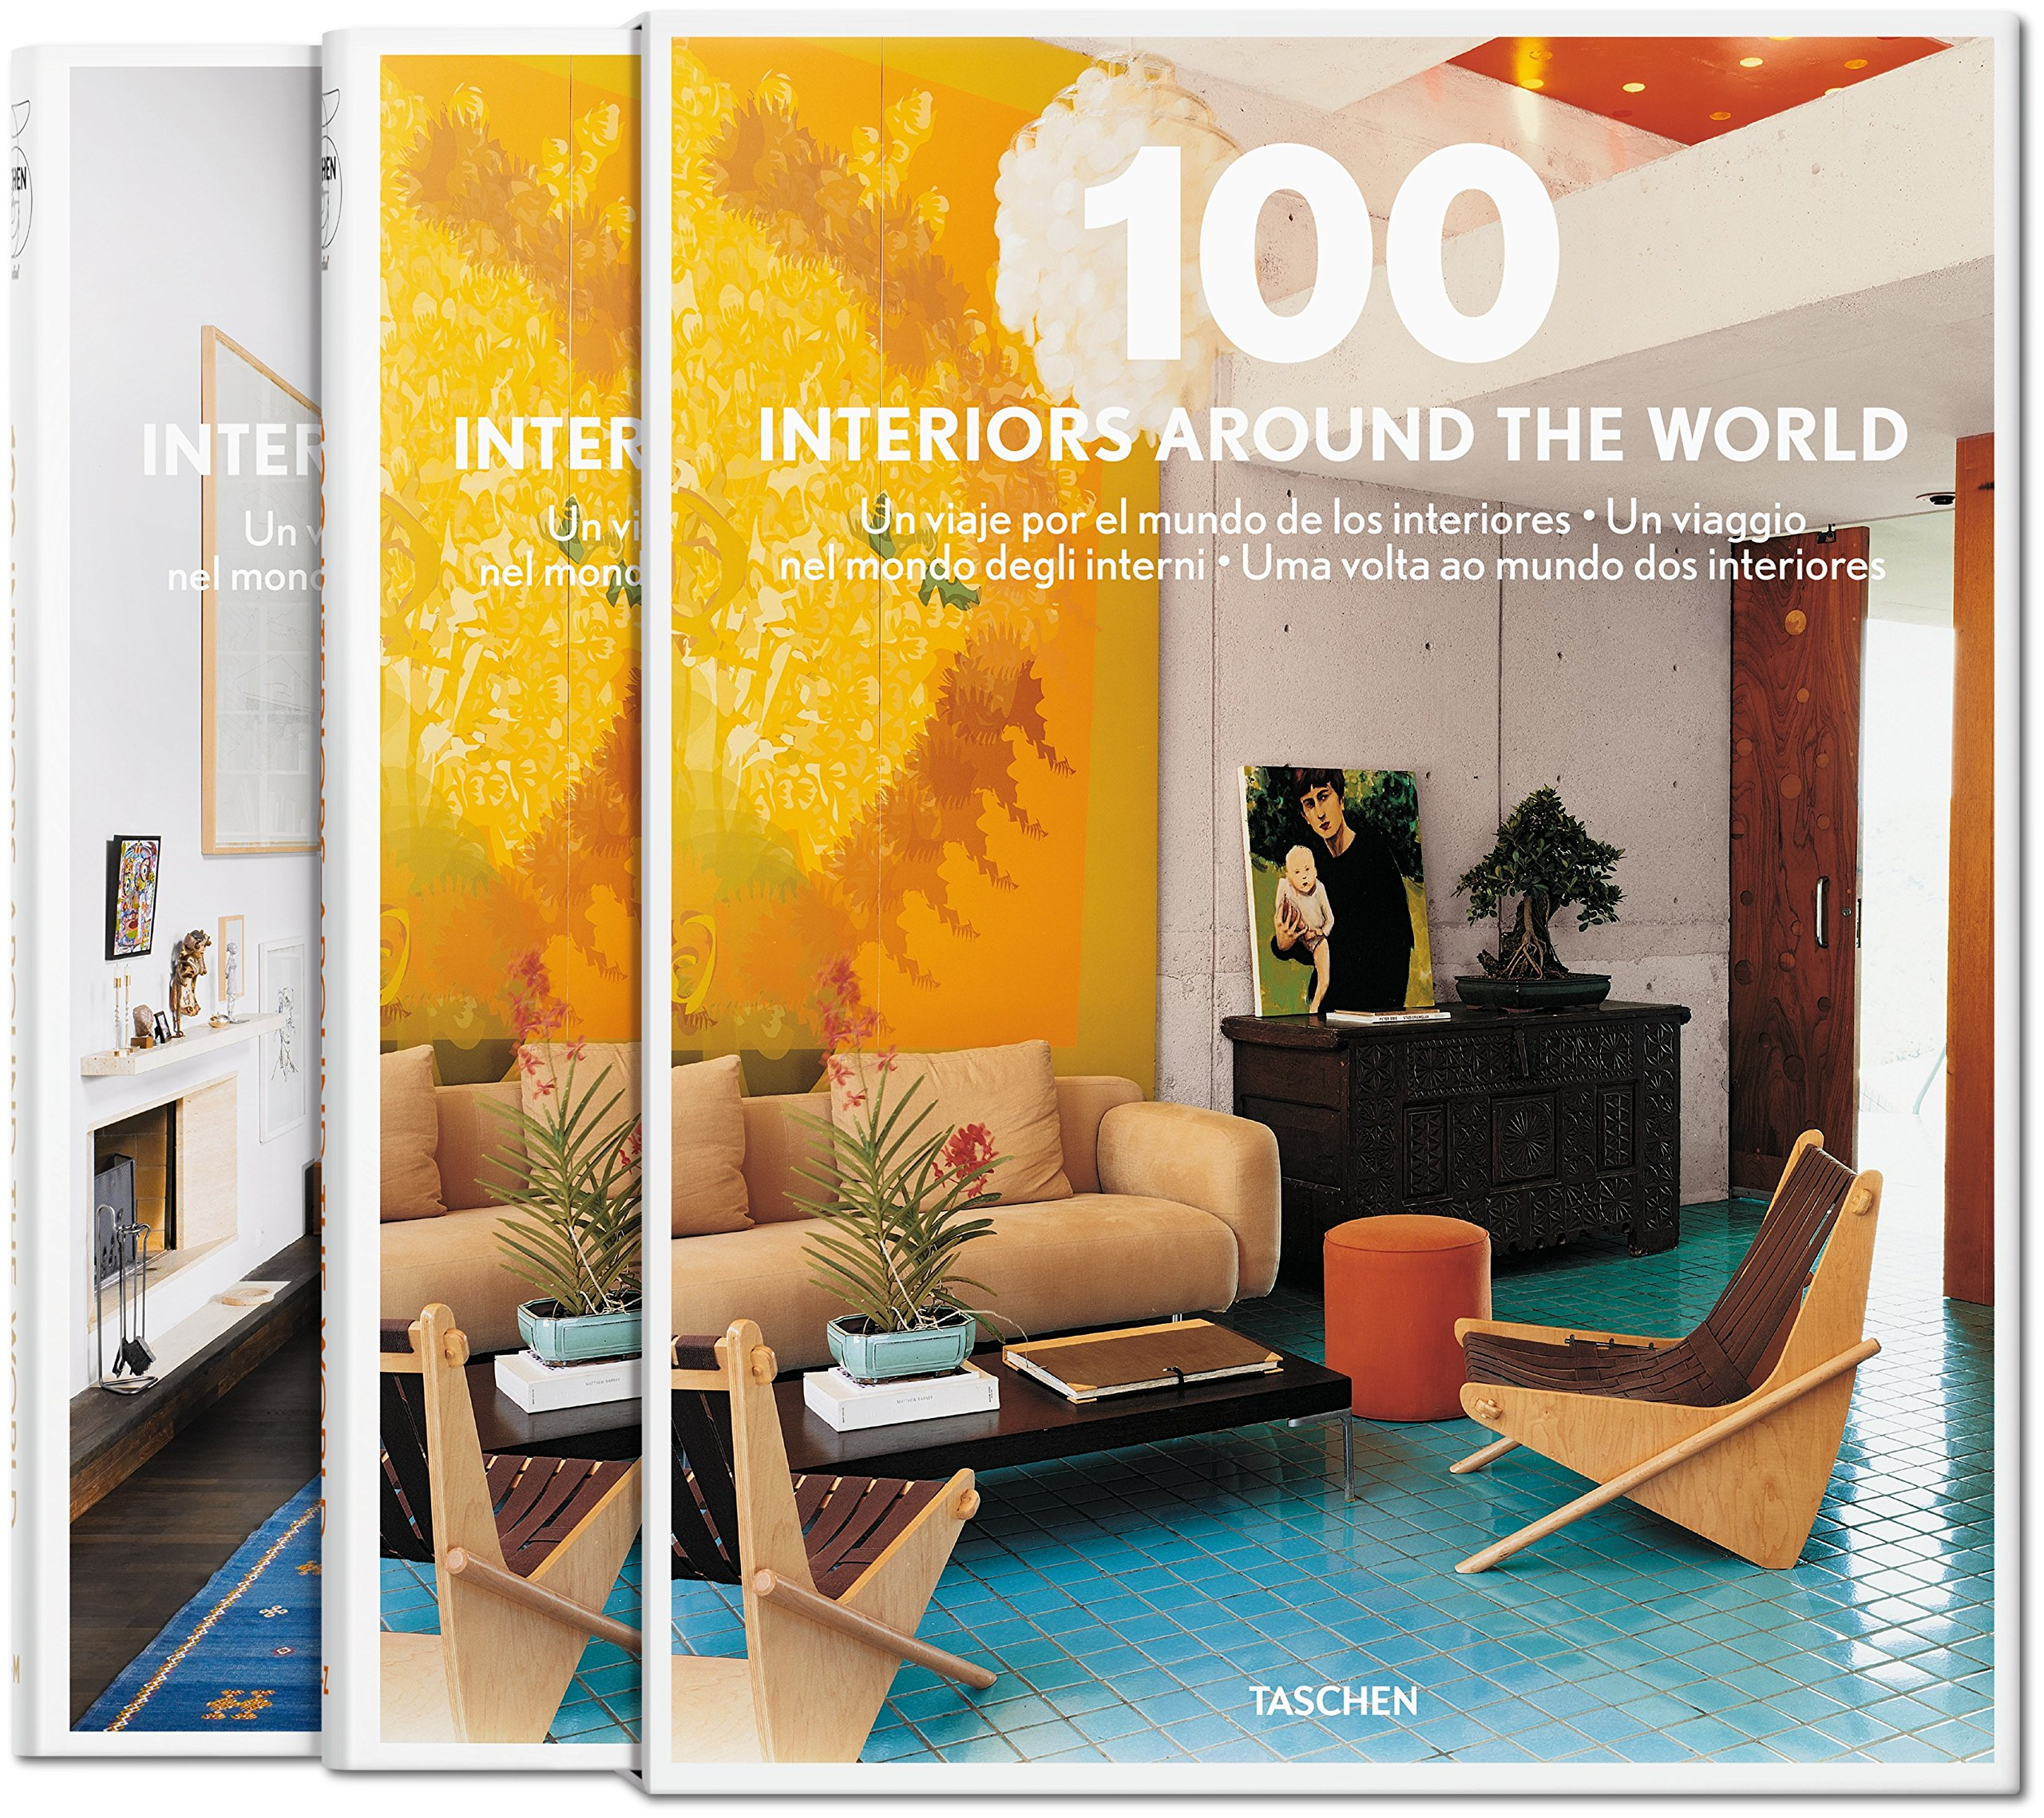 100 Interiors Around the World: 2 Volumes Interior Design: Amazon.de ...